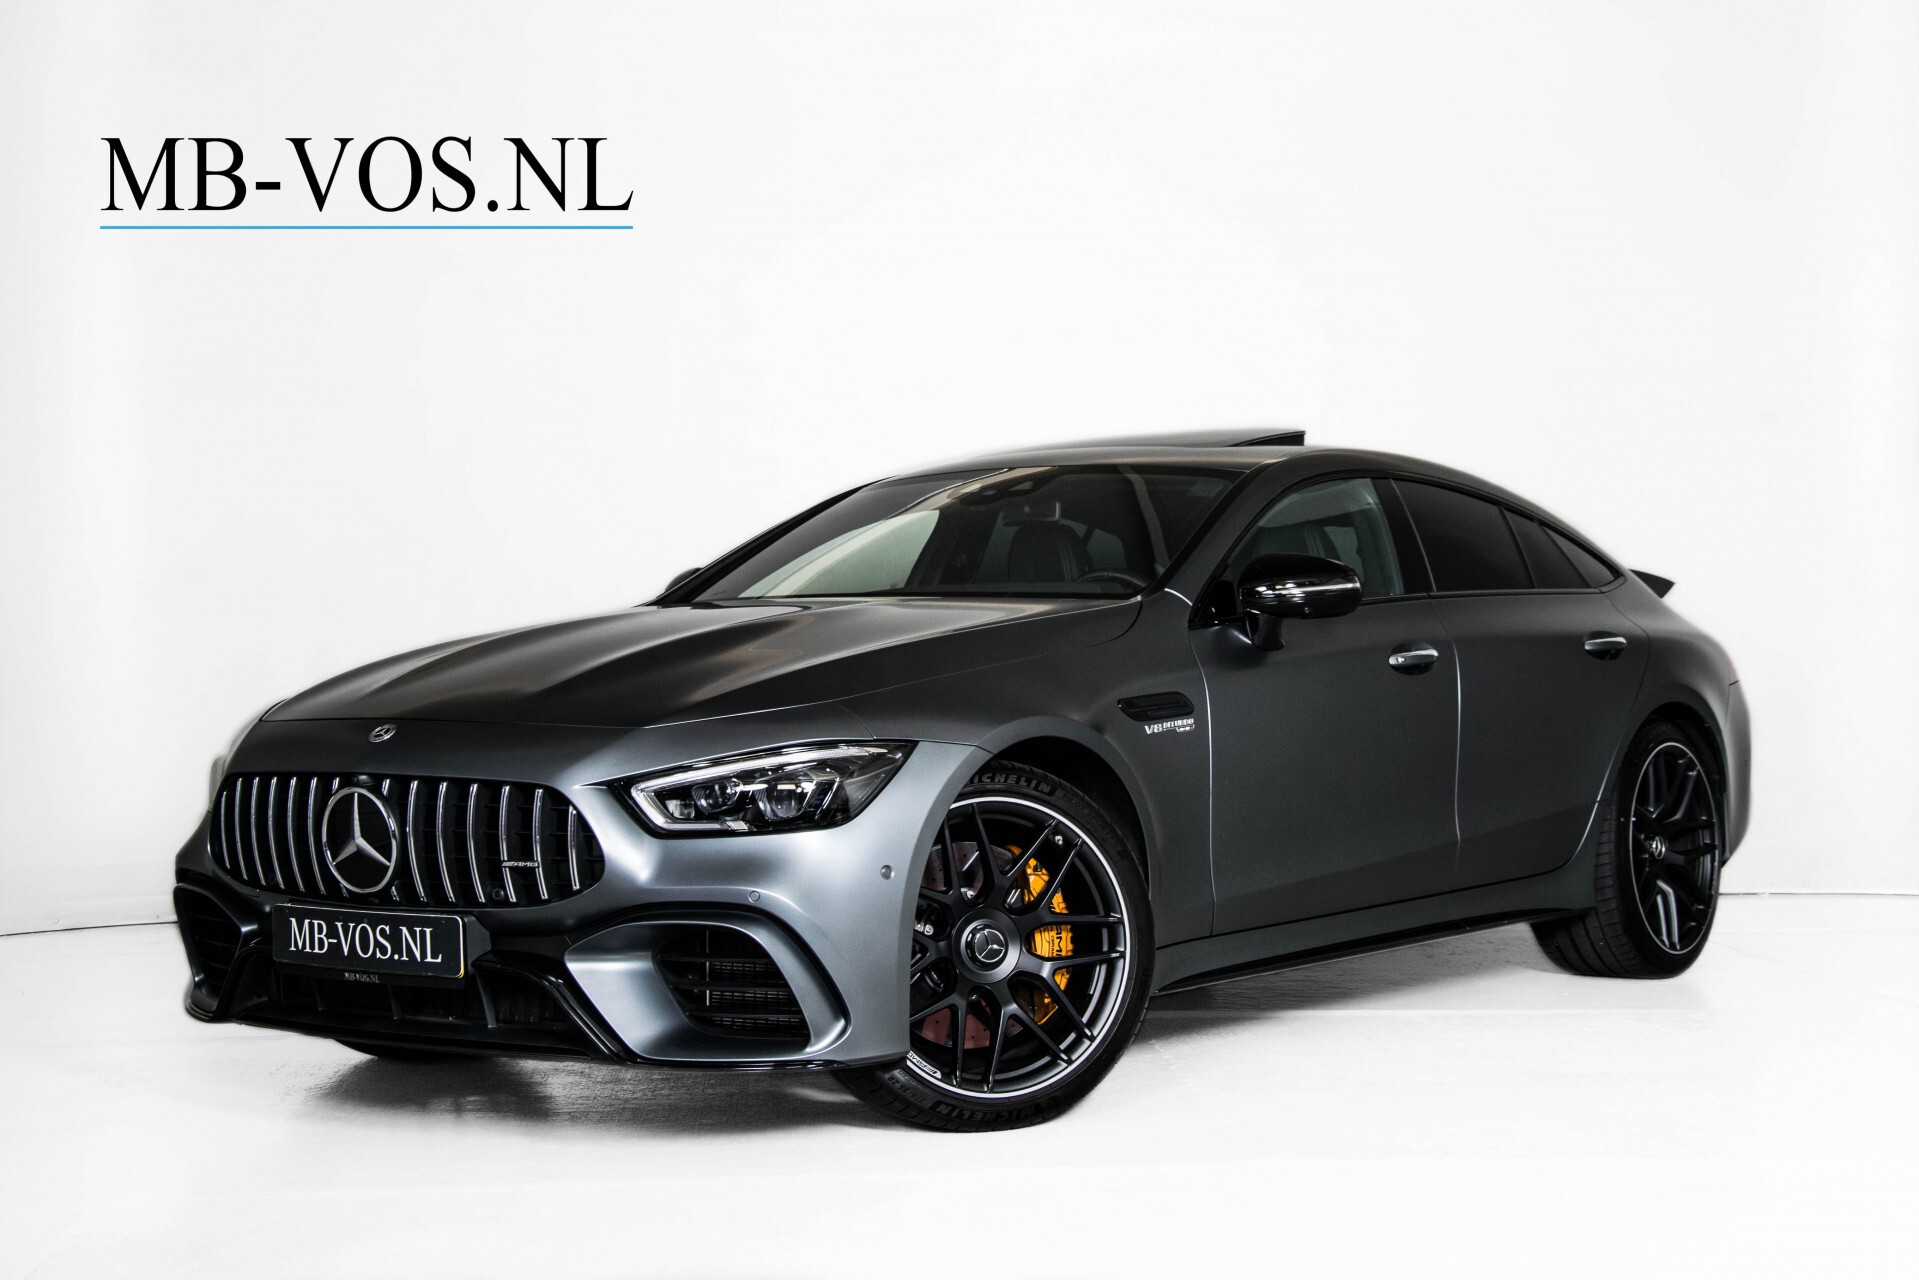 Mercedes-Benz AMG GT 4-Door Coupe 63 S 4+ Ceramic/Designo/Carbon/Burmester 3D/TV/Massage Aut9 Foto 1